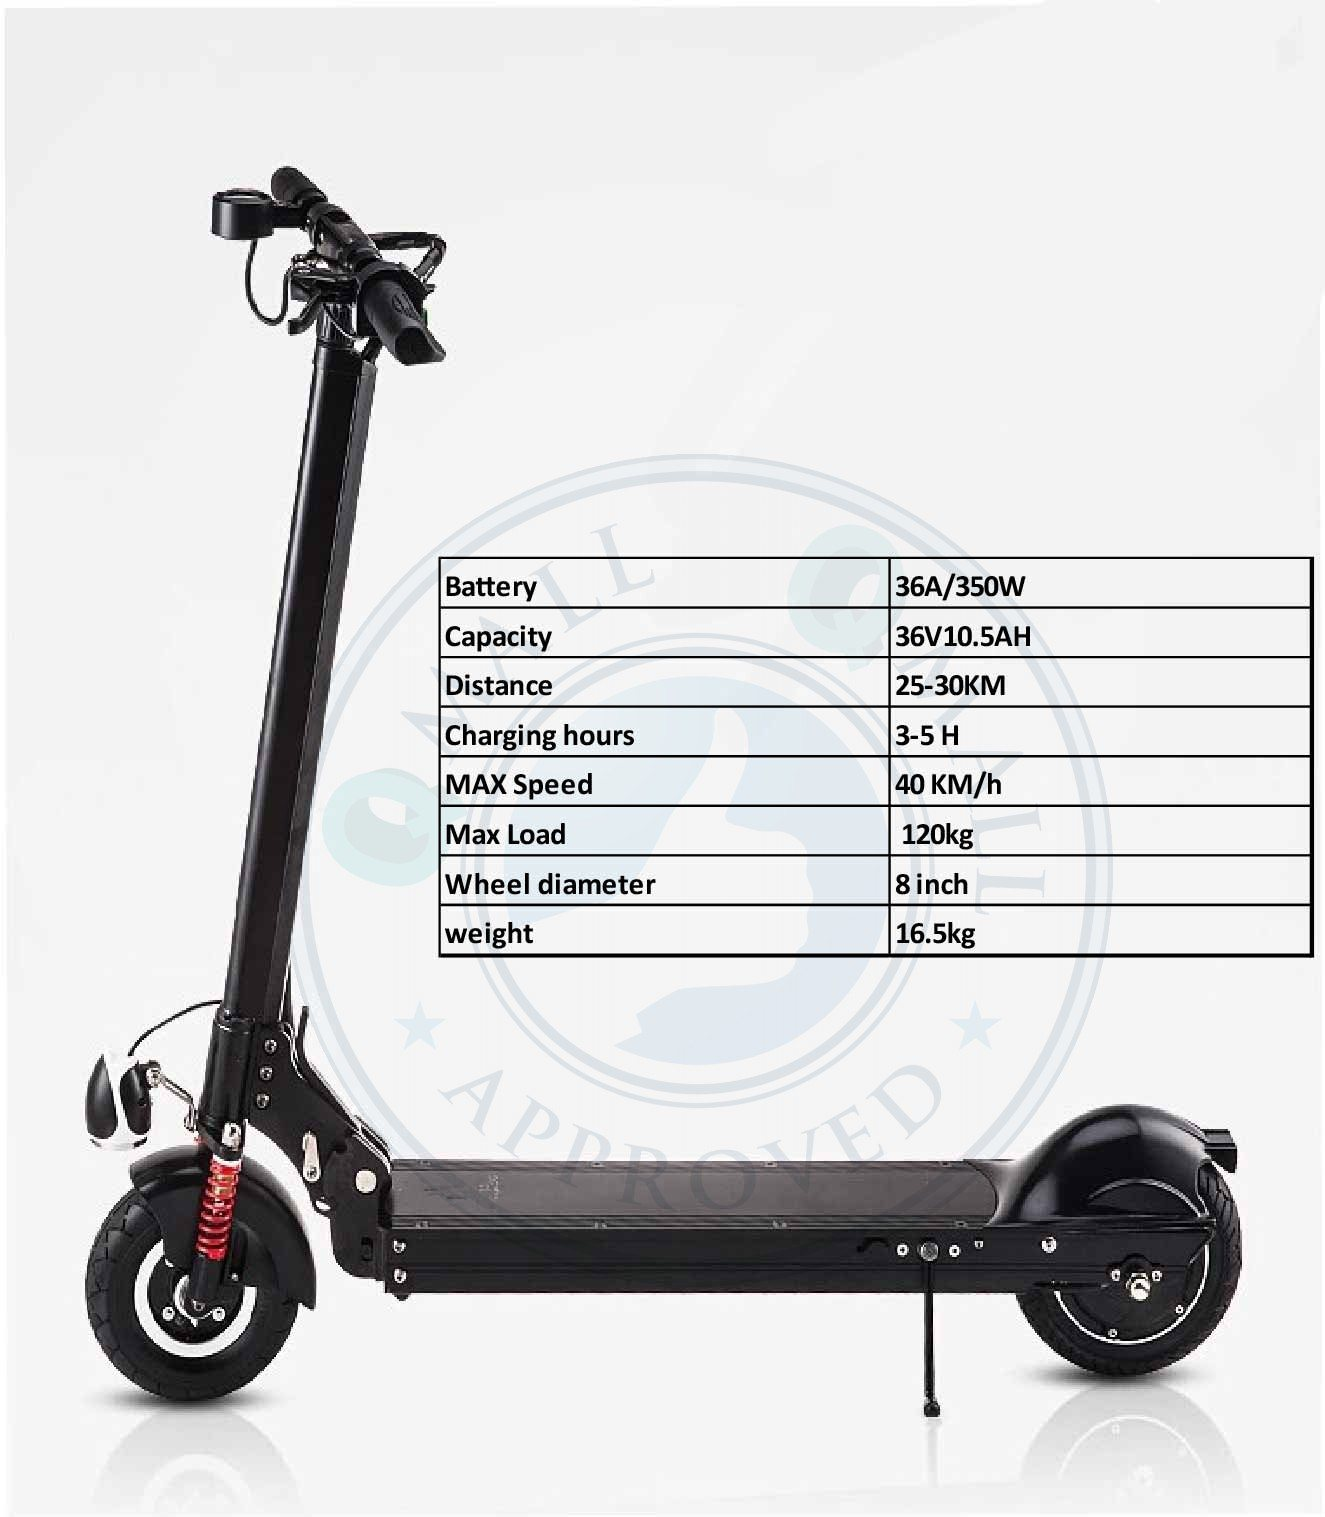 Buy 100 Authentic Shengte Soom Speedway Electric Scooter Foldable Model 8inch 10inch Wheel